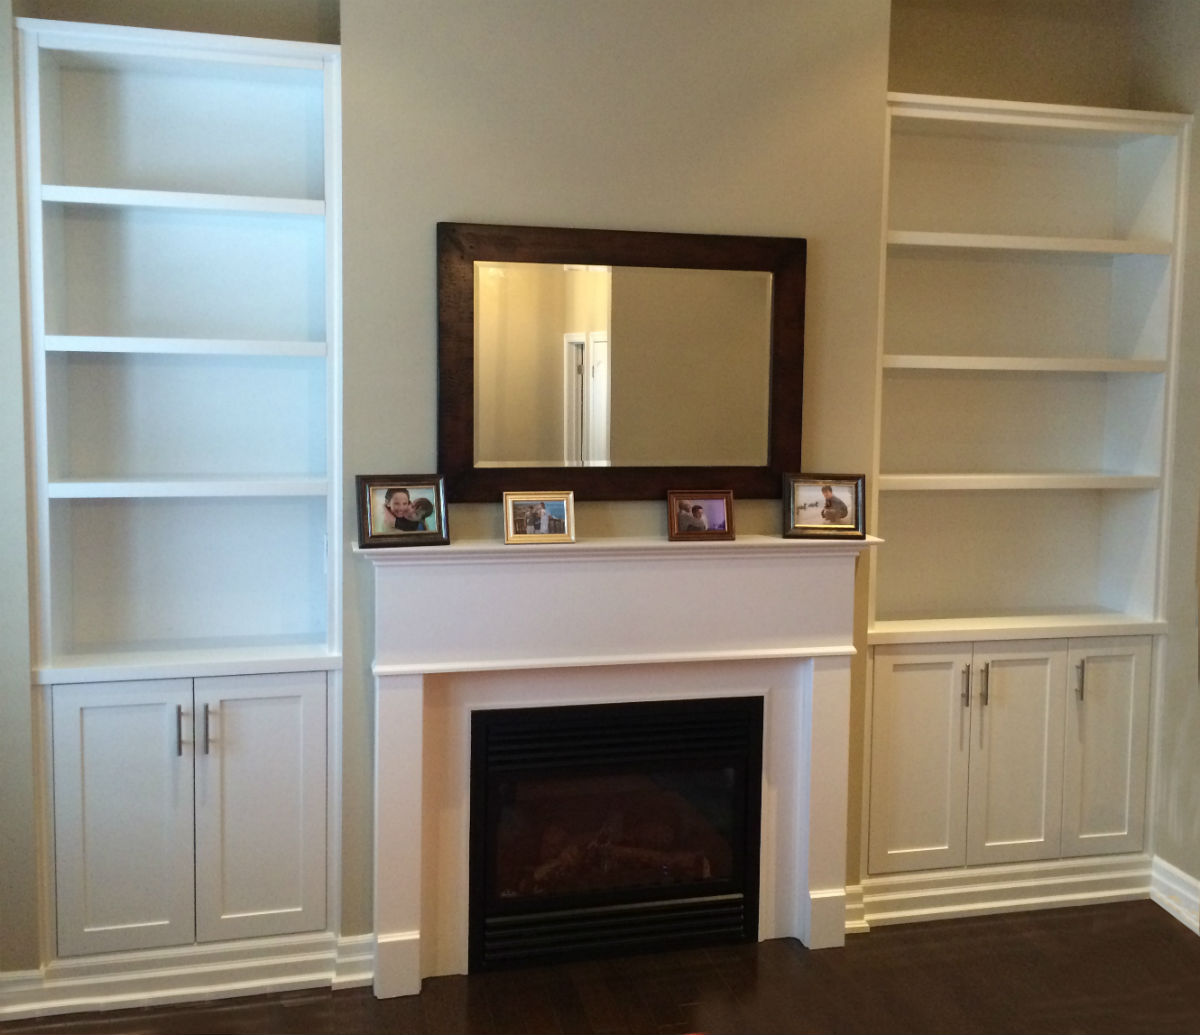 Wall Unit Shelves Open Shelving Fireplace Bookshelves